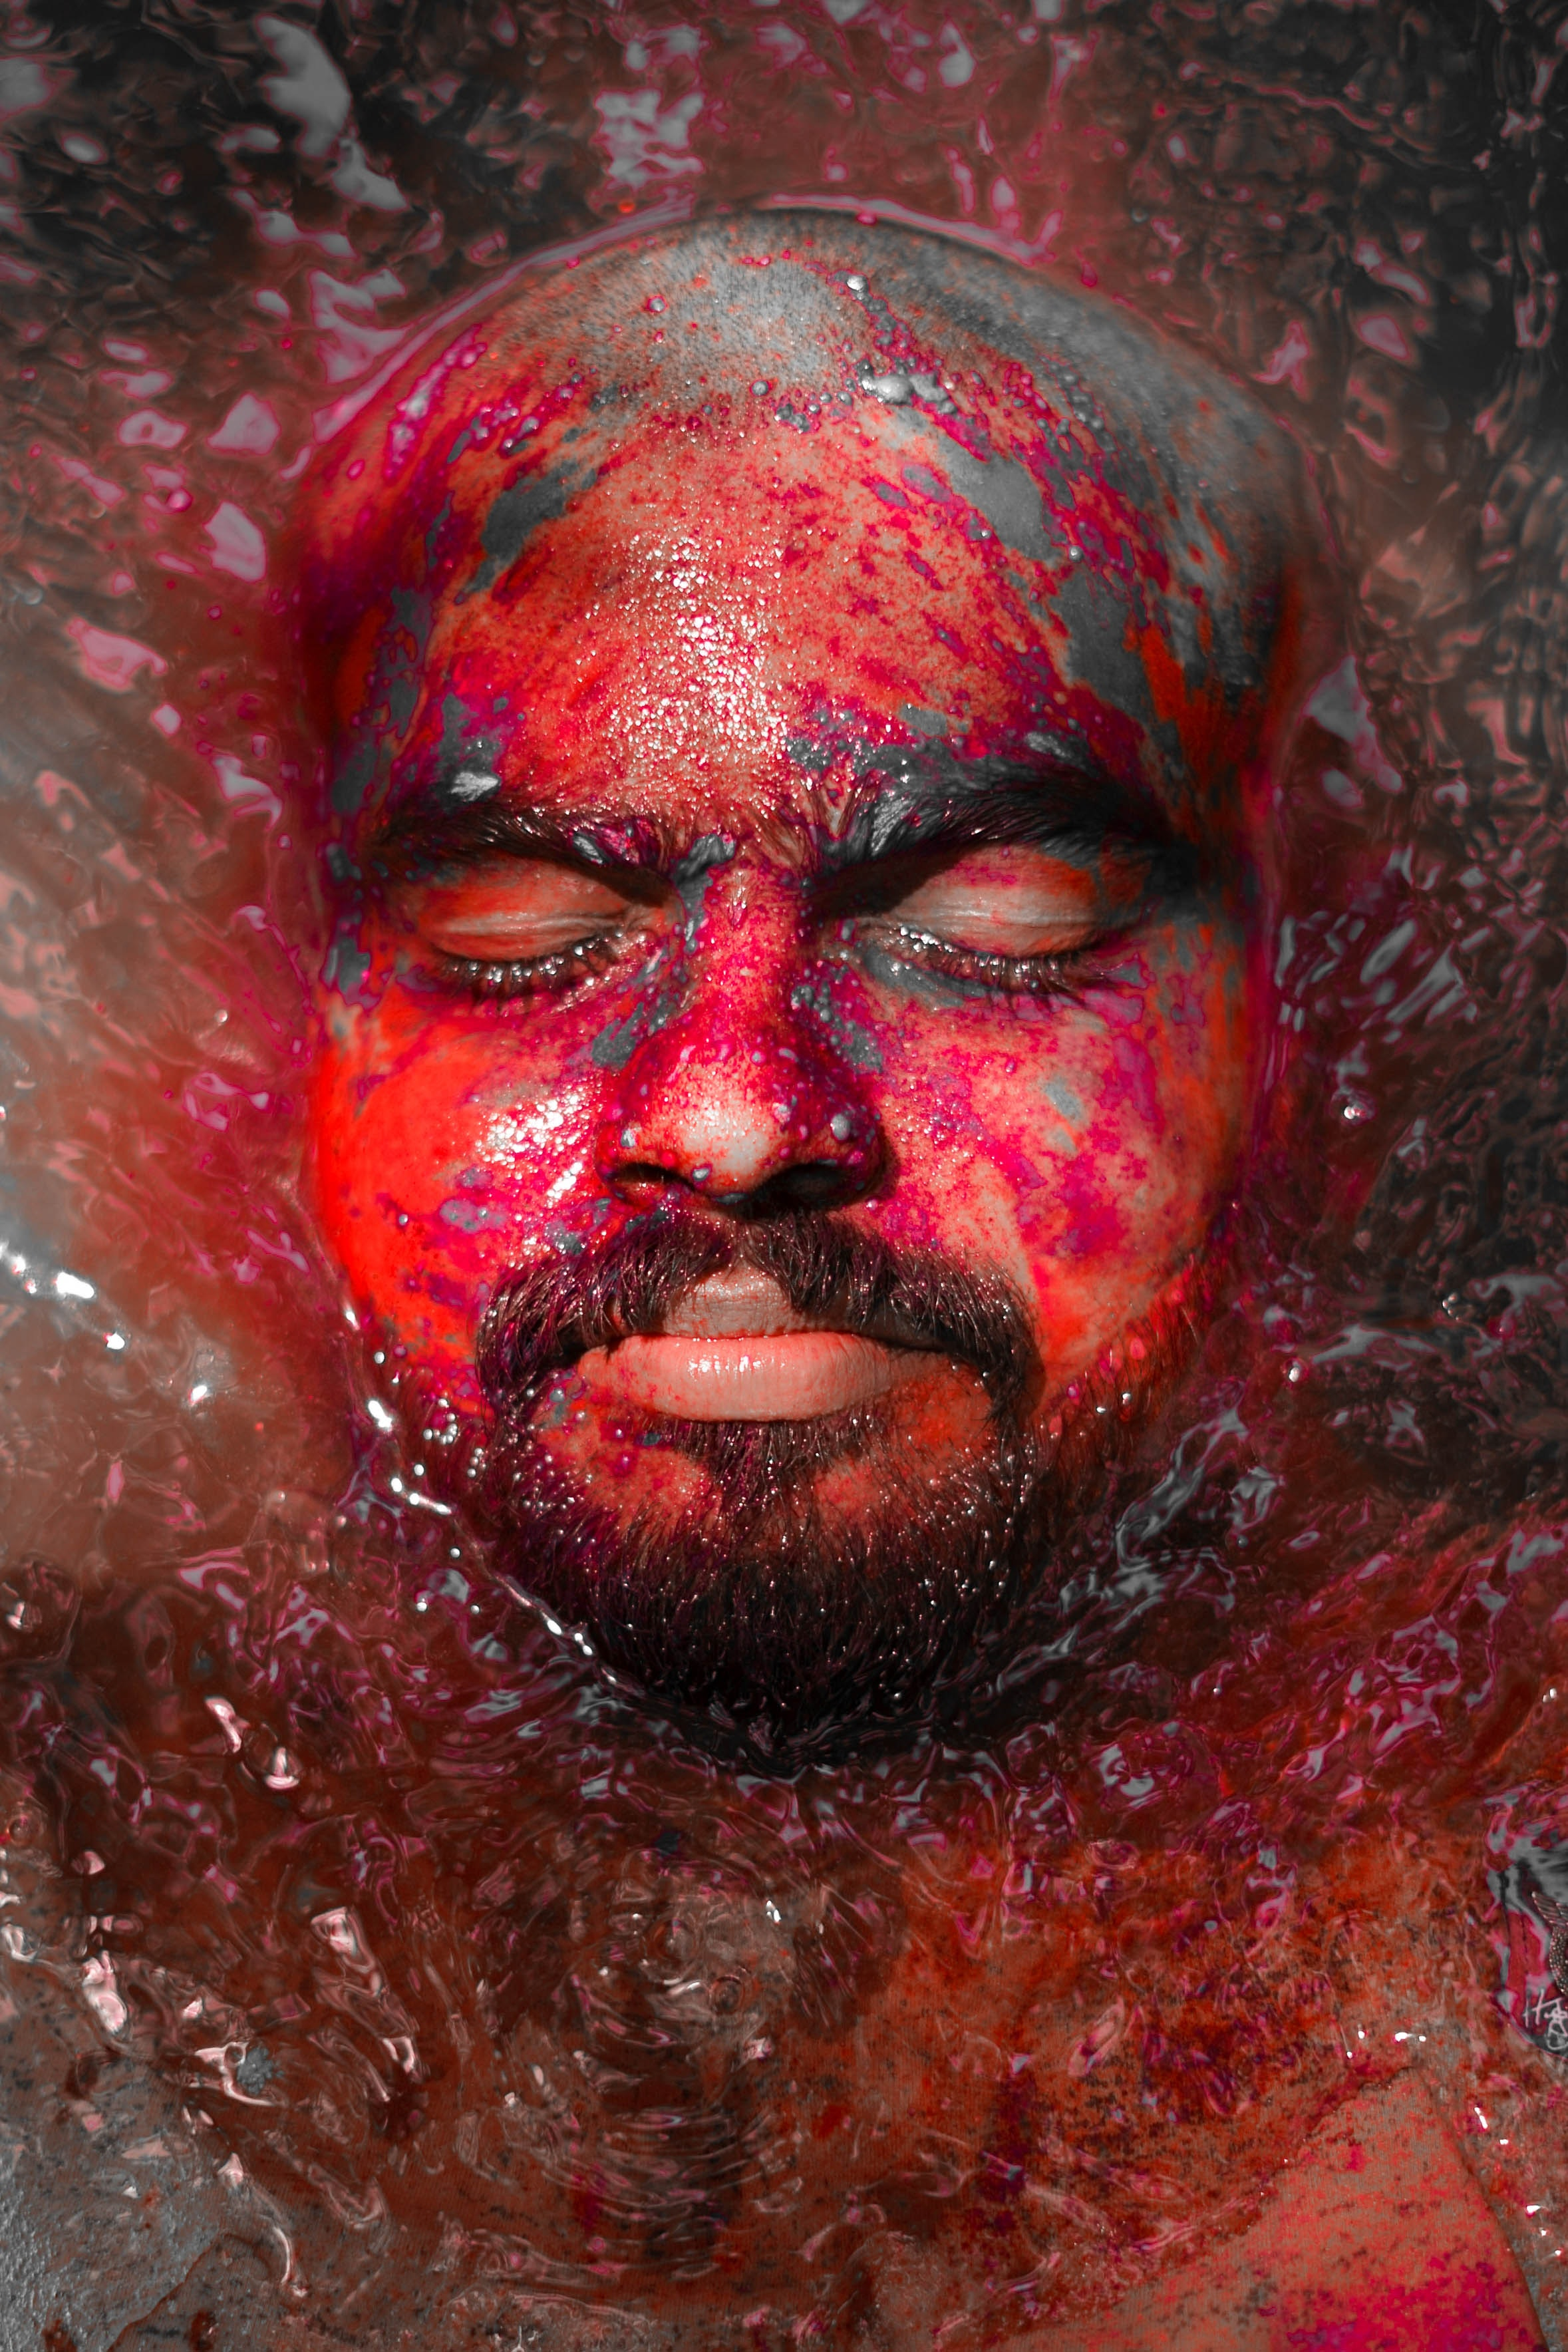 man-underwater-with-face-shown-3093525